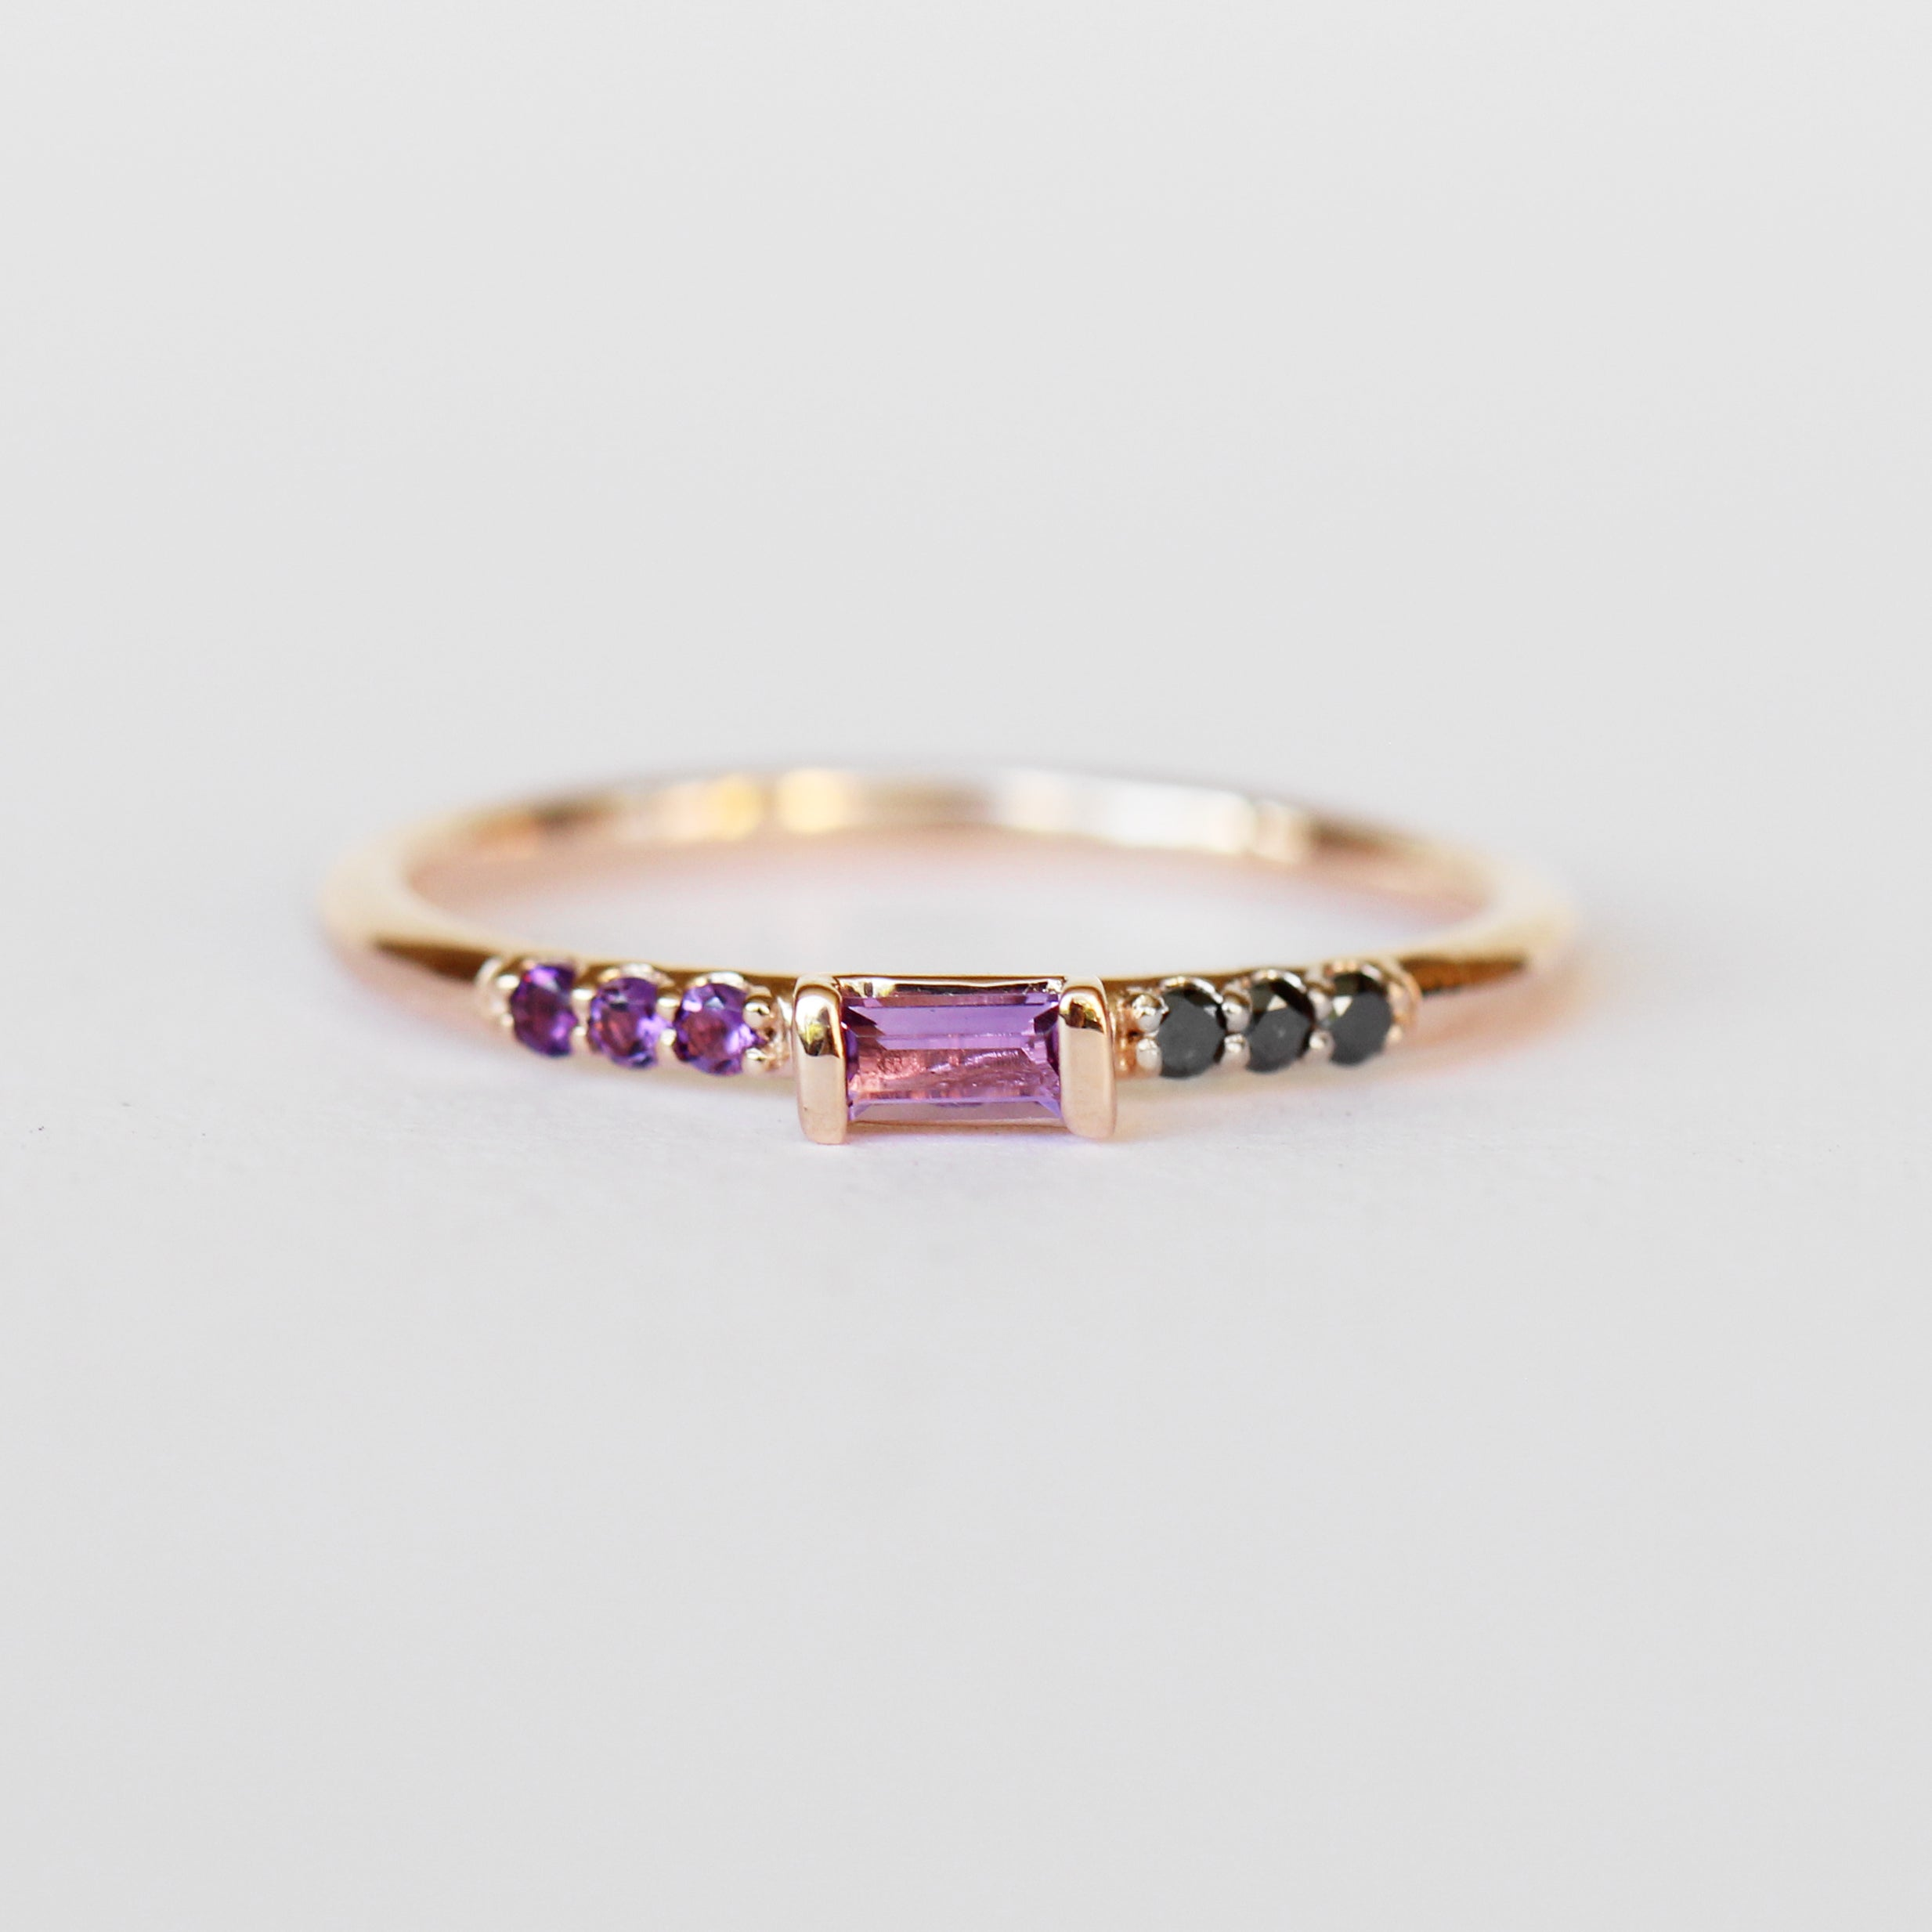 Summer Band - Amethyst and Black Diamonds - Celestial Diamonds ® by Midwinter Co.